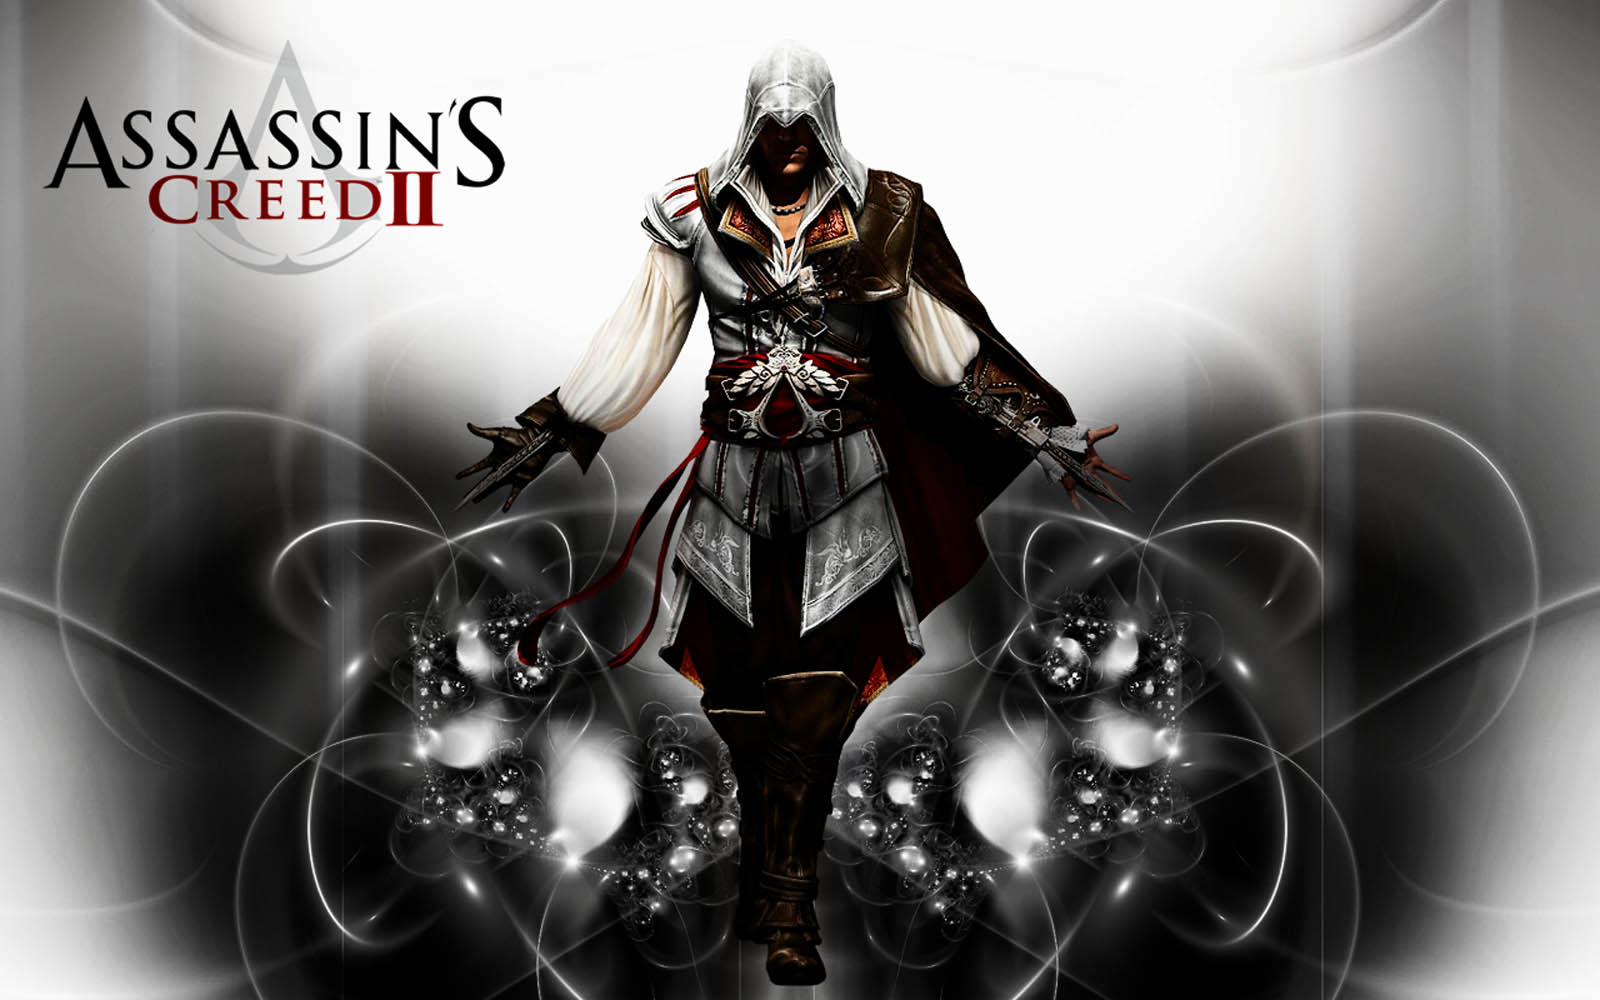 Assassins Creed 2 Game Wallpapers 1600x1000